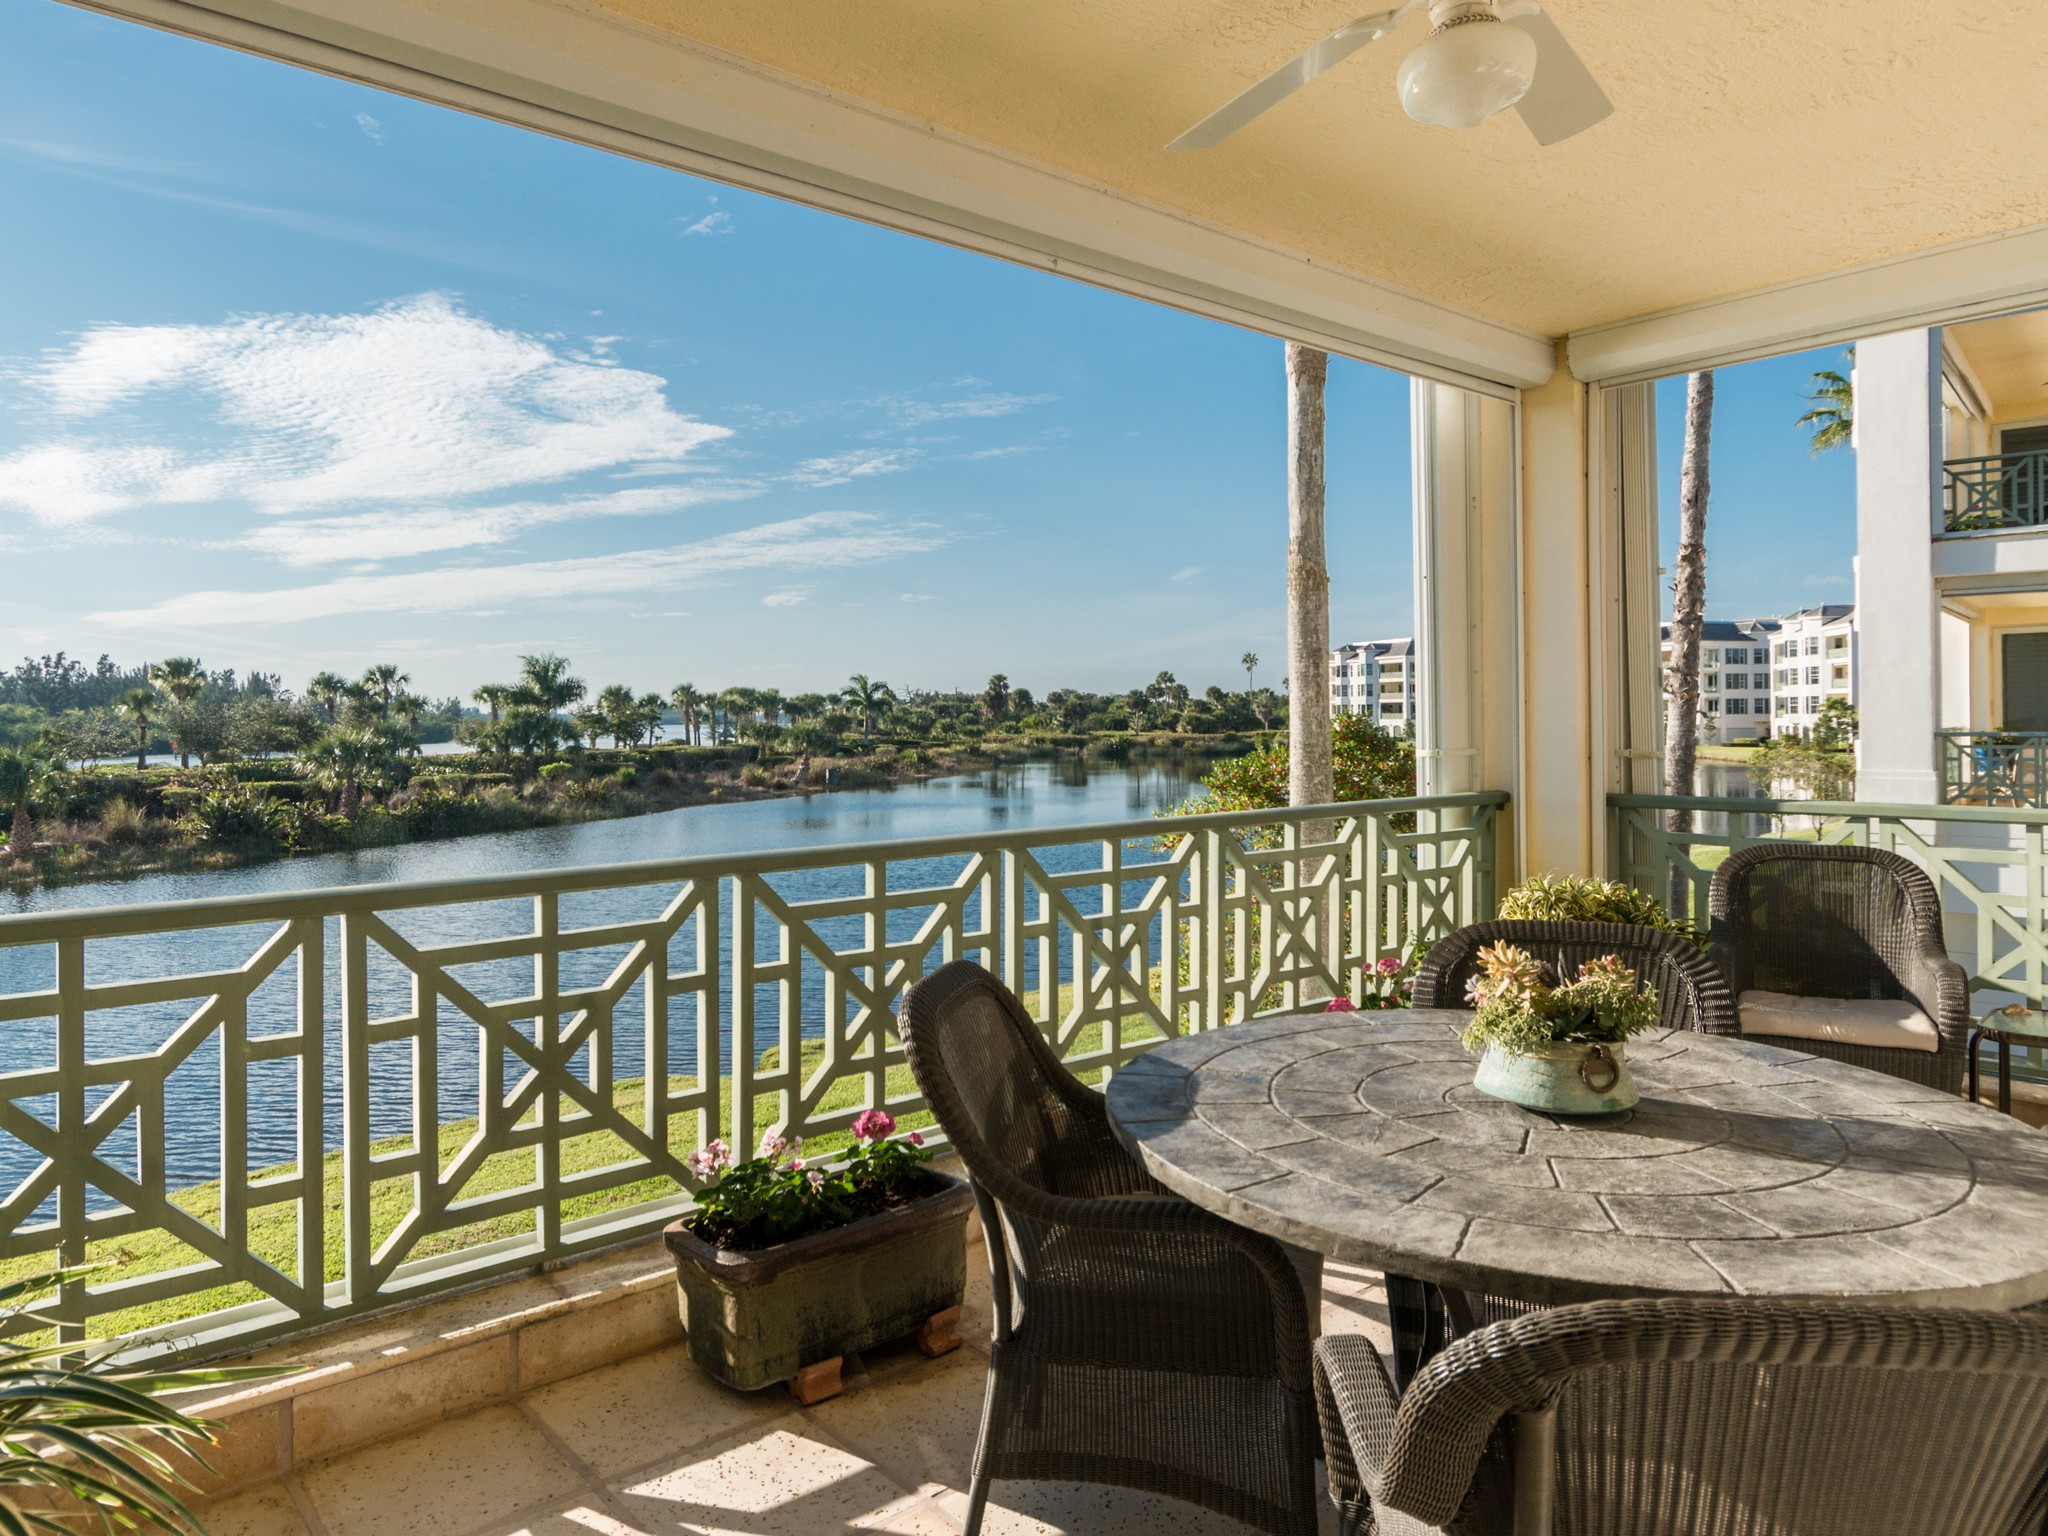 Maison unifamiliale pour l Vente à Move-in Ready River view Condo 9013 Somerset Bay Lane #202 Vero Beach, Florida, 32963 États-Unis